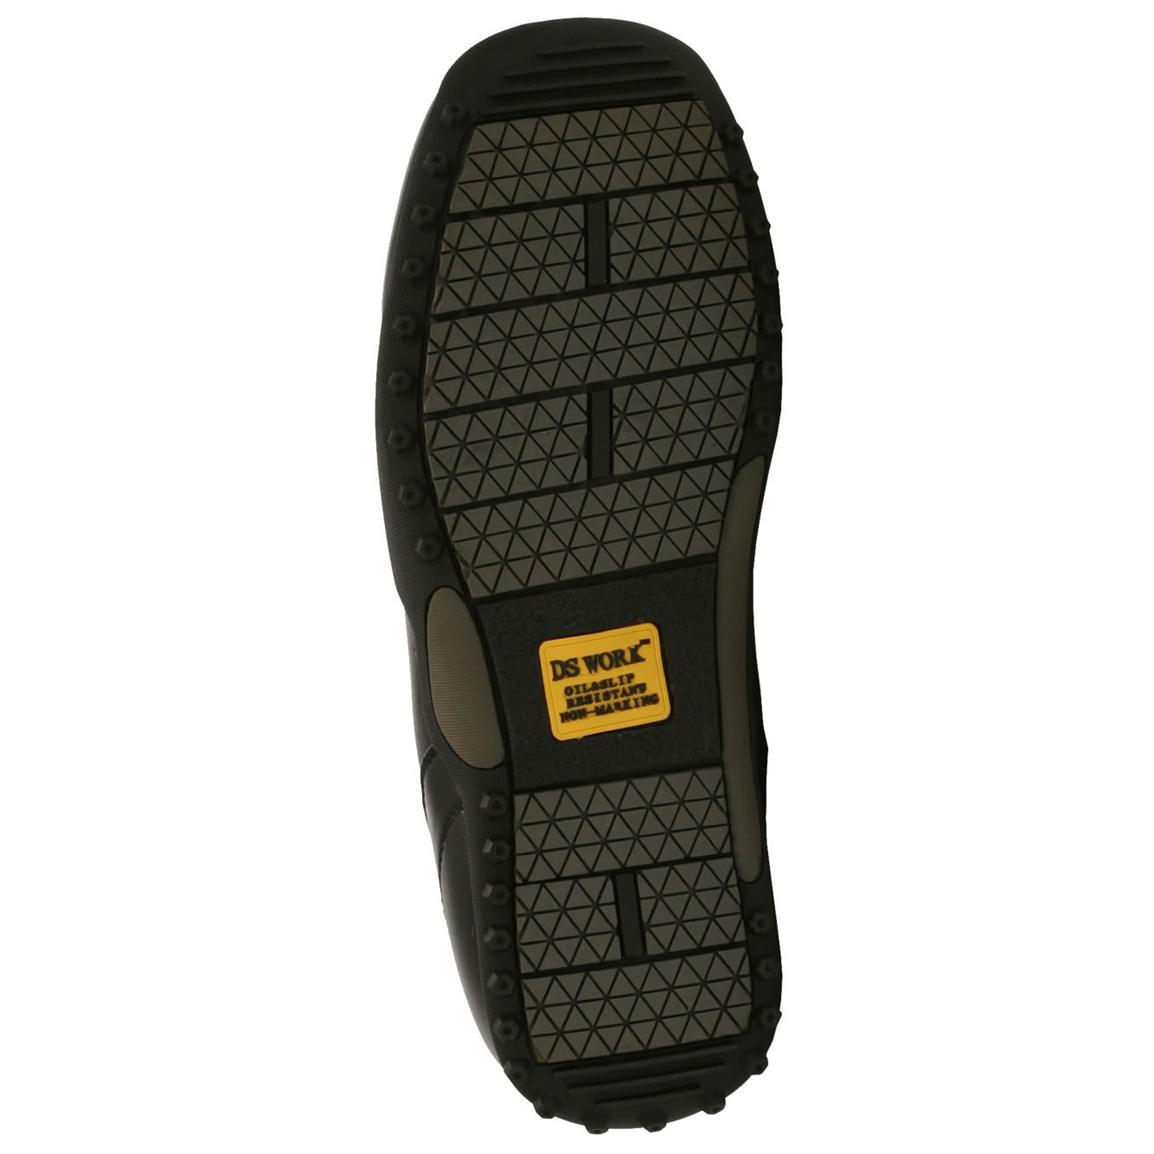 Oil and slip-resistant non-marking rubber outsole with tread design for superior traction